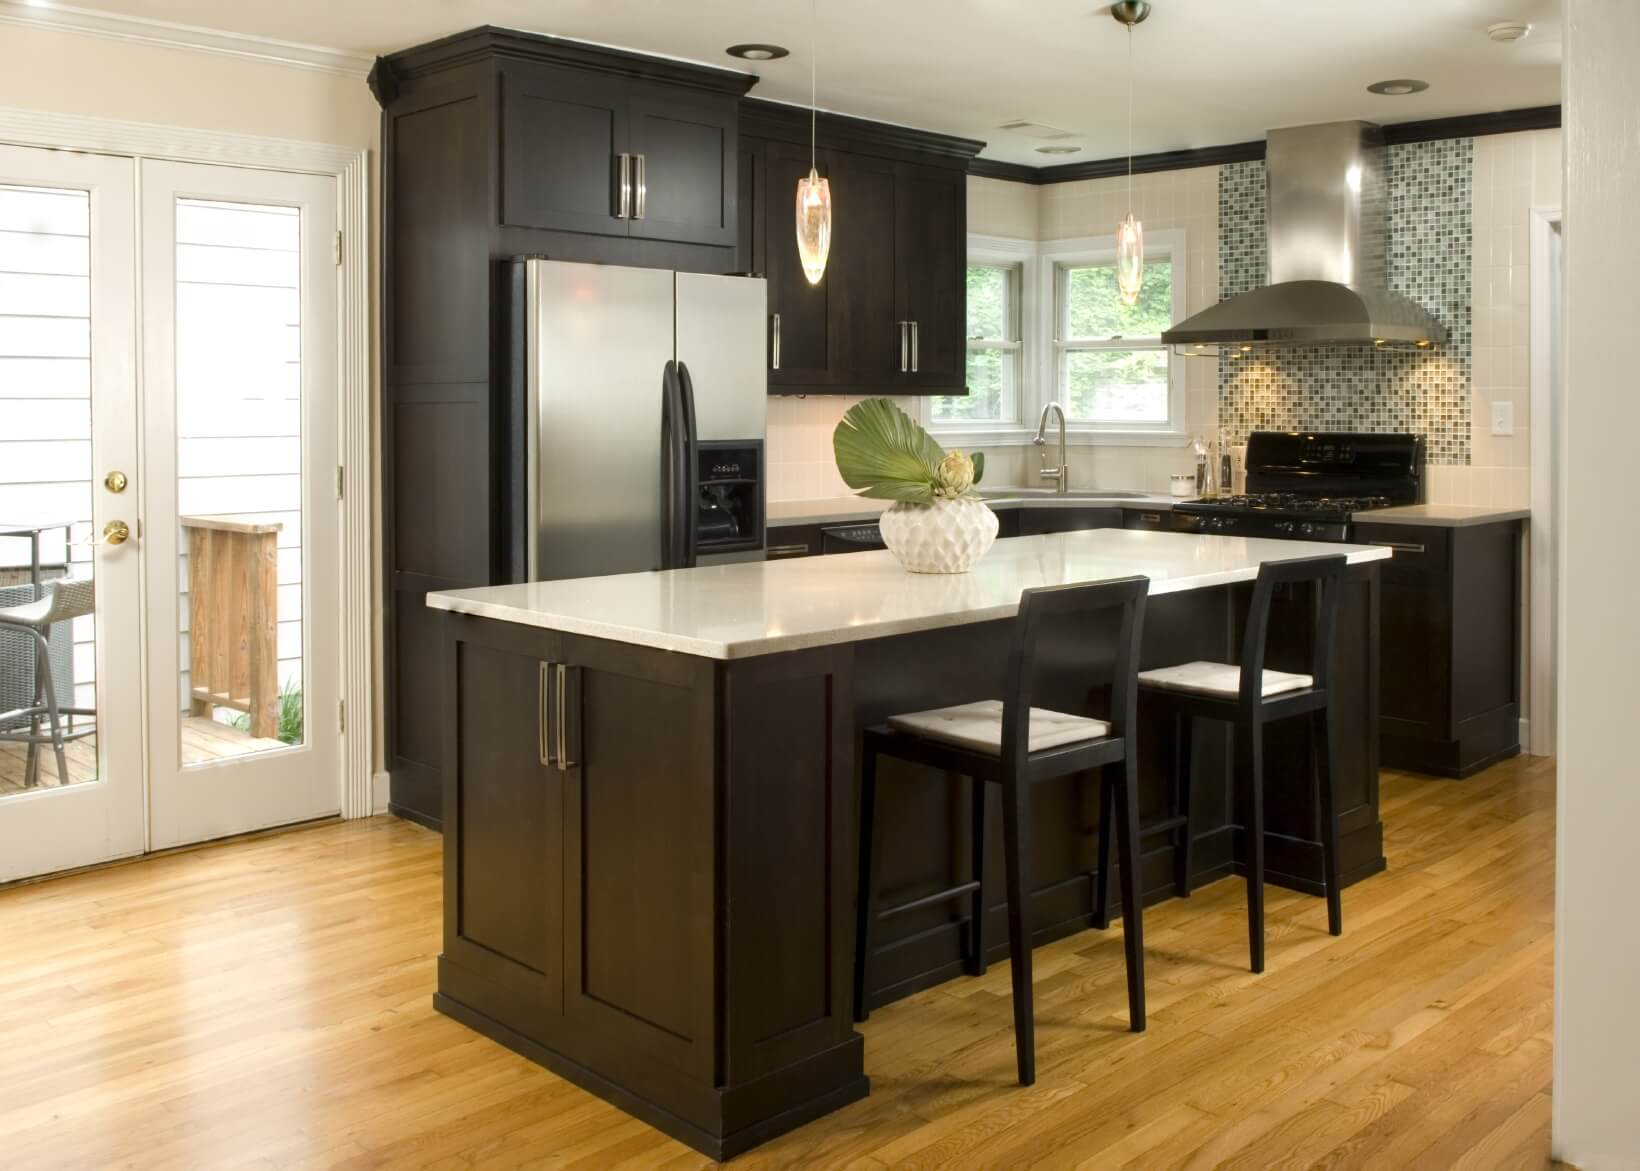 Dark Hardwood Floors In Kitchen Kitchens With Dark Wood Cabniets And Hardwood Floors Magnificent